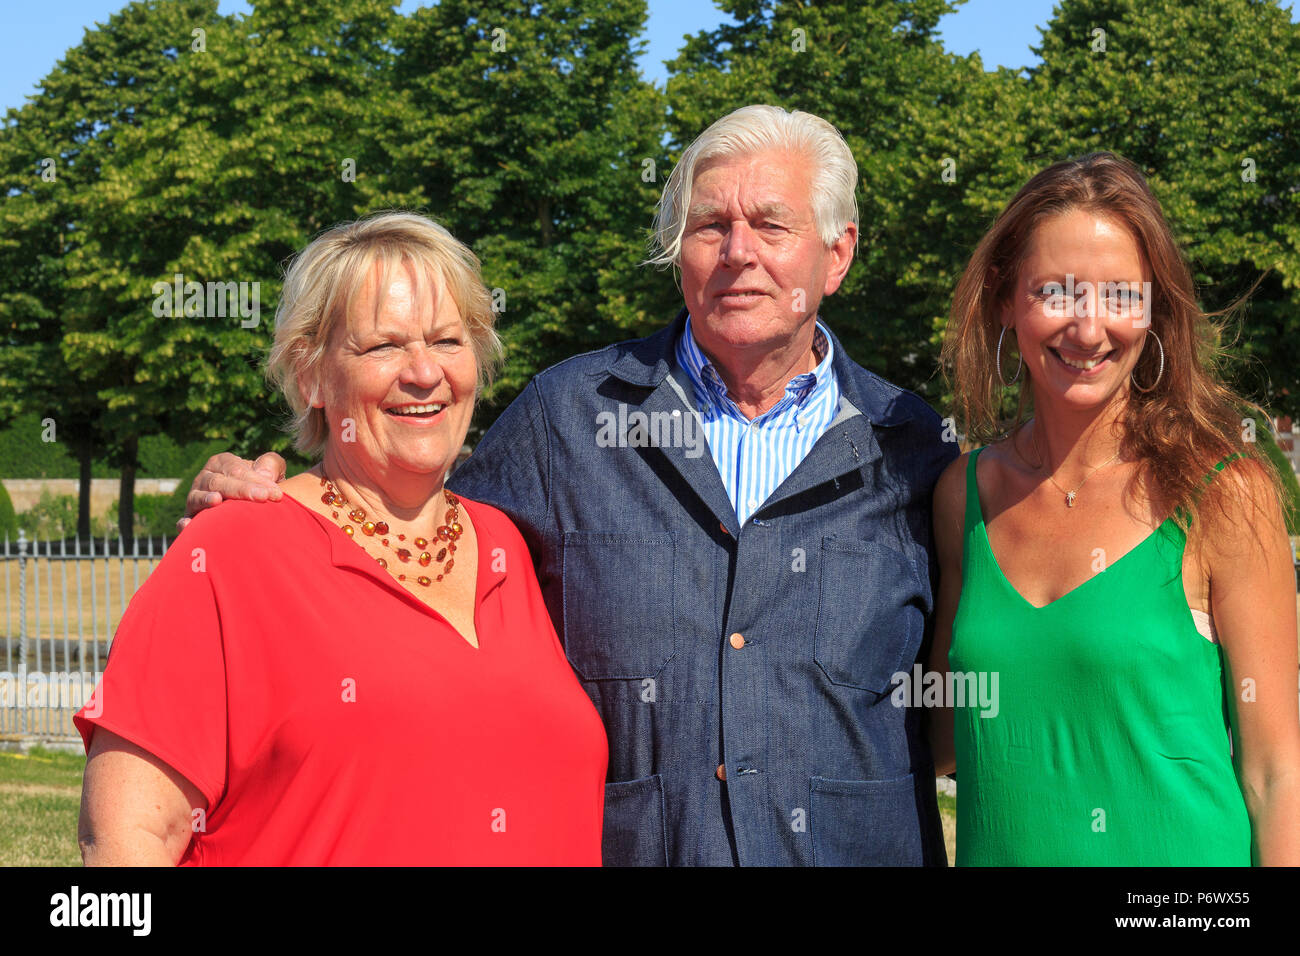 London, UK. 2nd-8th July 2018. RHS Hampton Court Flower Show. Iconic Horticultural Heroes.  Dutch landscape designer, plantsman and author Piet Oudolf with RHS Director General Sue Biggs and  RHS Director of Communications Hayley Monckton at Hampton Court Flower Show to celebrate Piet's iconic achievement in garden design. - Stock Image